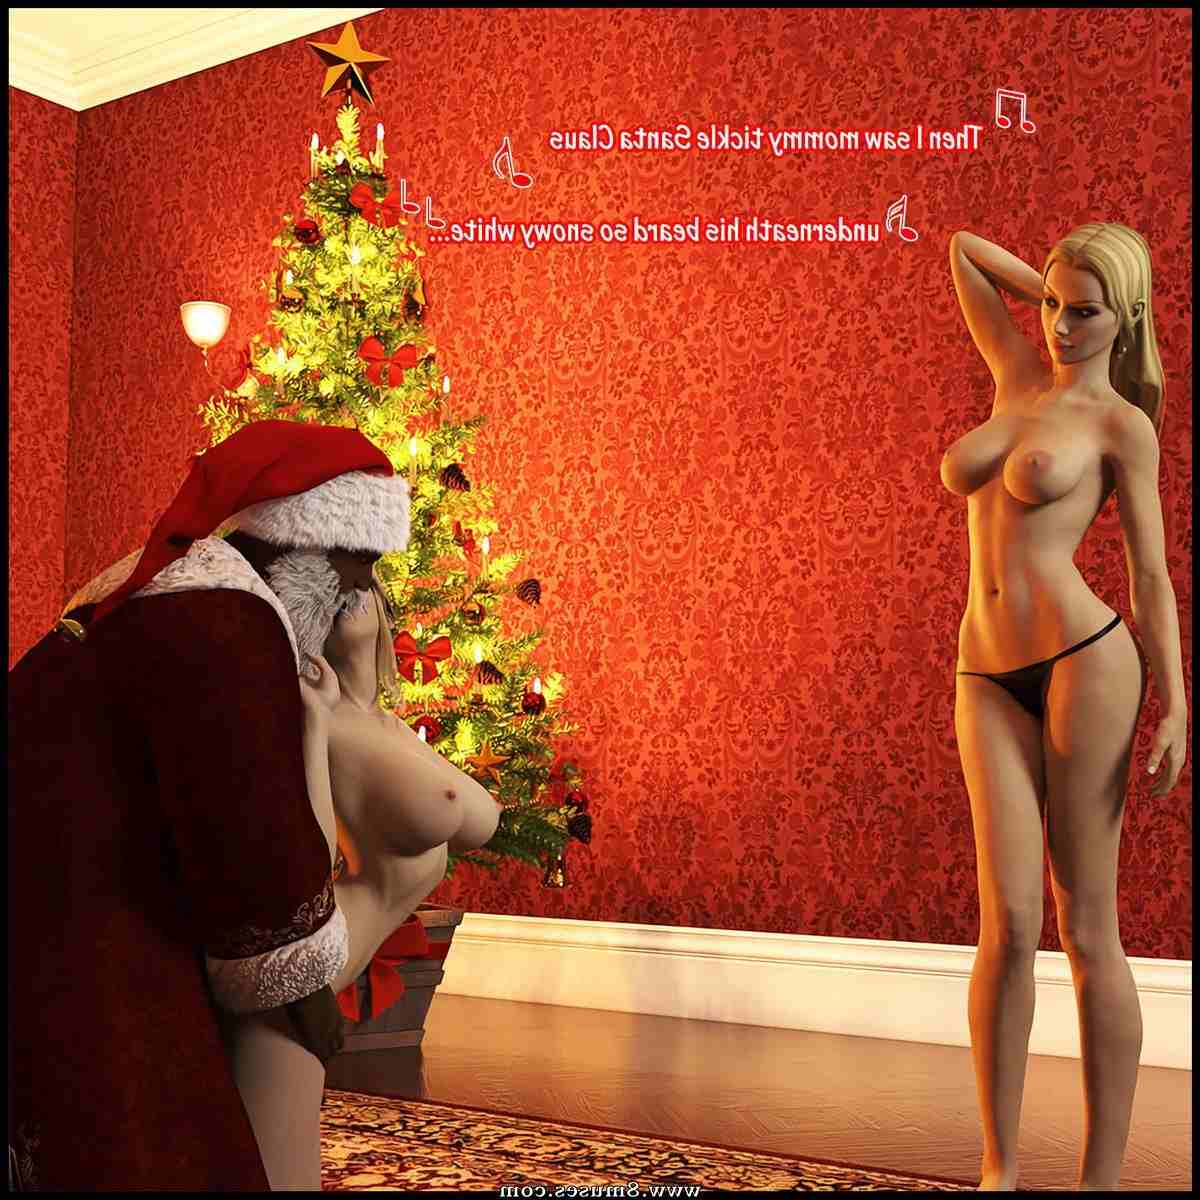 JohnPersons_com-Comics/Darklord/I-Saw-Mommy-Kissing-Santa-Claus I_Saw_Mommy_Kissing_Santa_Claus__8muses_-_Sex_and_Porn_Comics_2.jpg